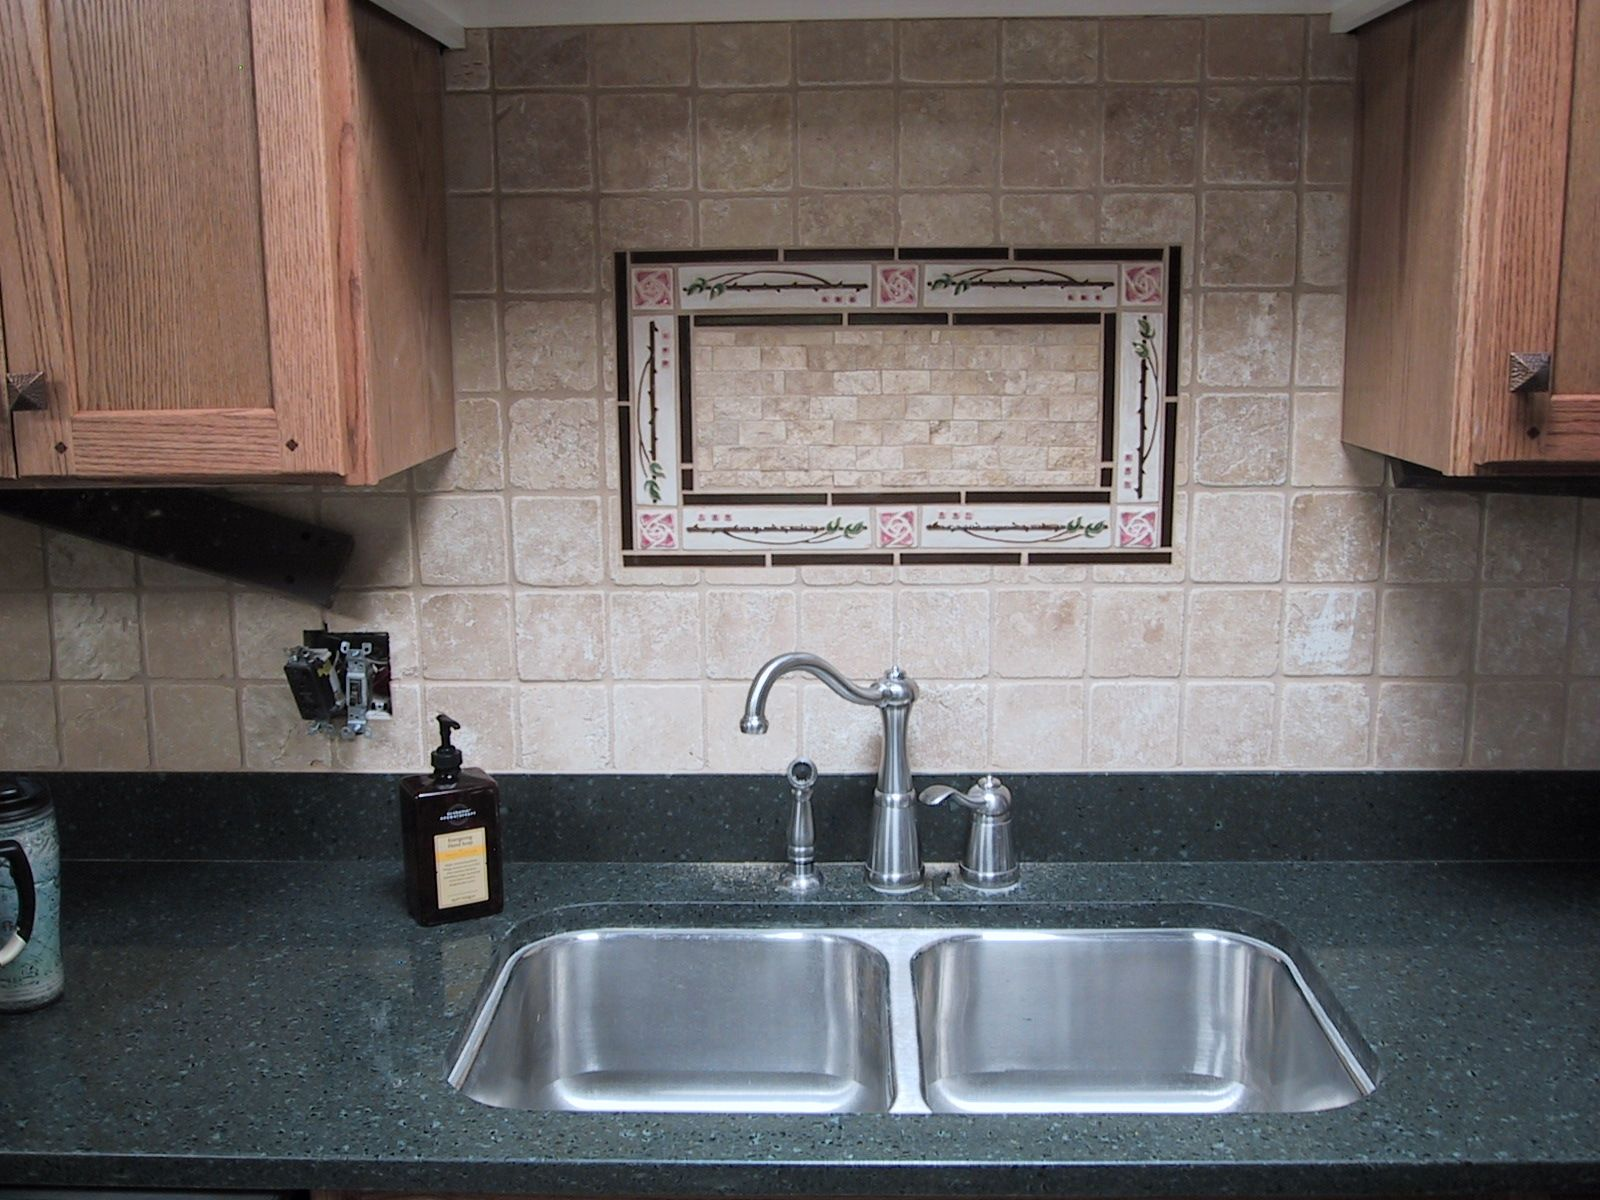 Backsplash Ideas Kitchen Sink Backsplash Ideas Diy House Pinterest Backsplash